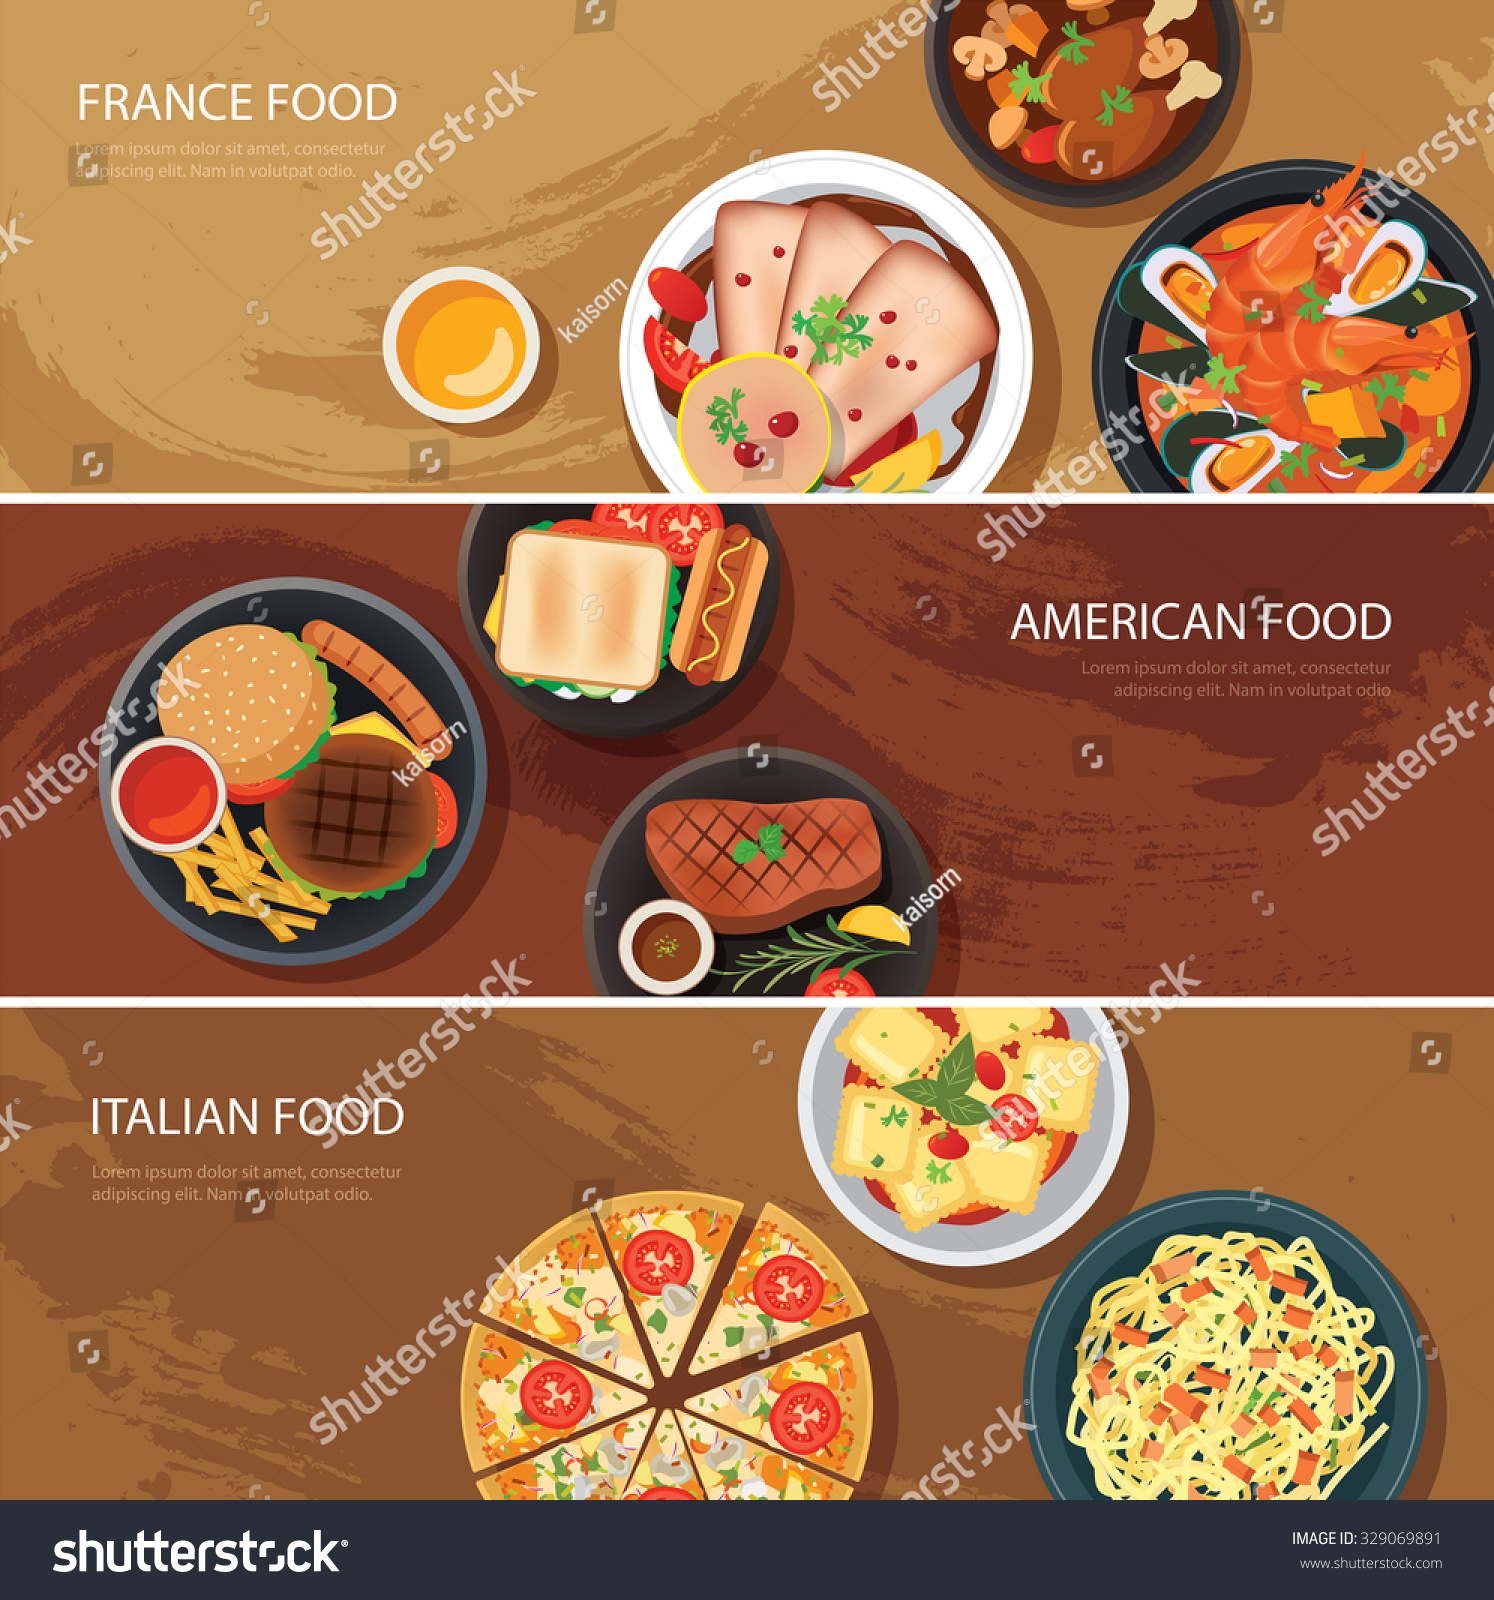 an analysis of fast food in american culture The fast food culture in india: difference between mcdonald and dhabas fast food in india is definitely an old concept, here talk about mcdonald and dhabas eating.